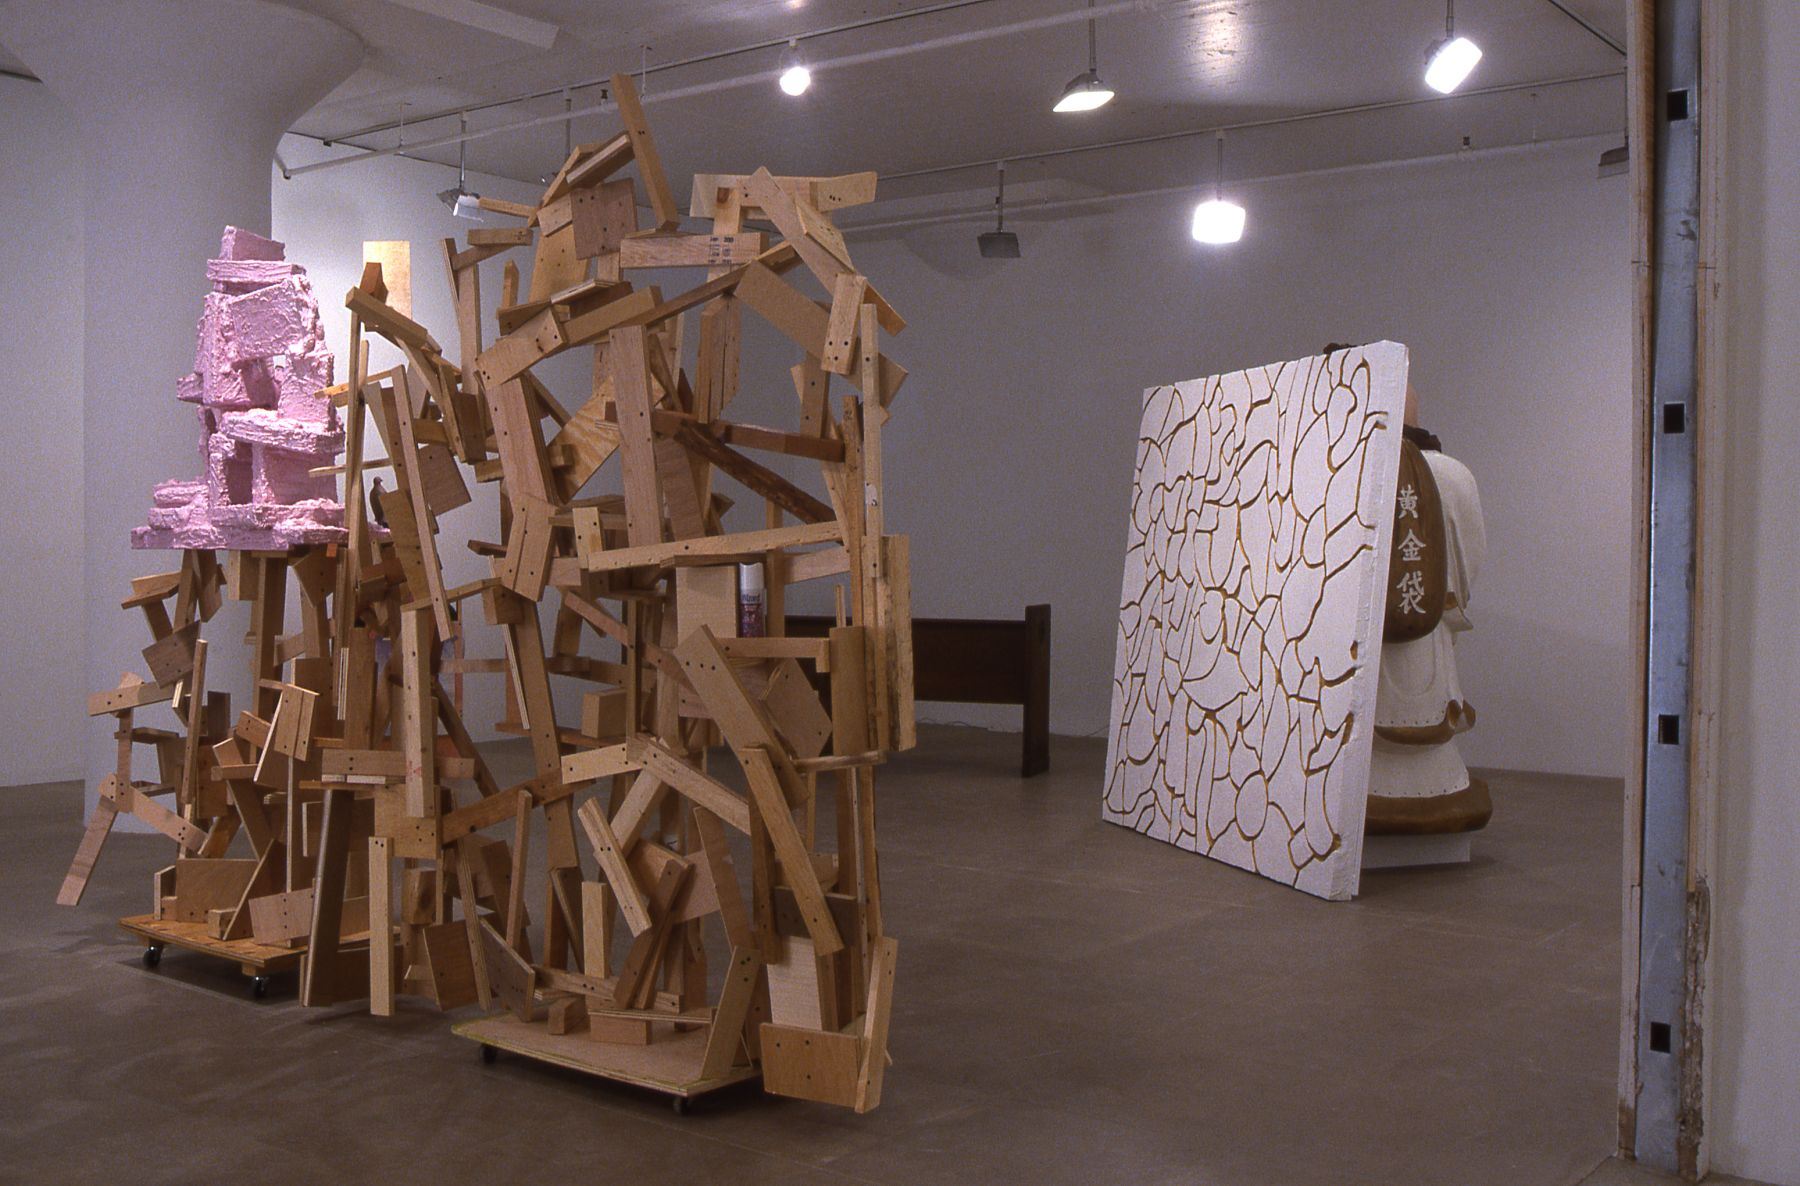 Rachel Harrison, Installation view, Latka/Latkas, Greene Naftali, New York, 2004